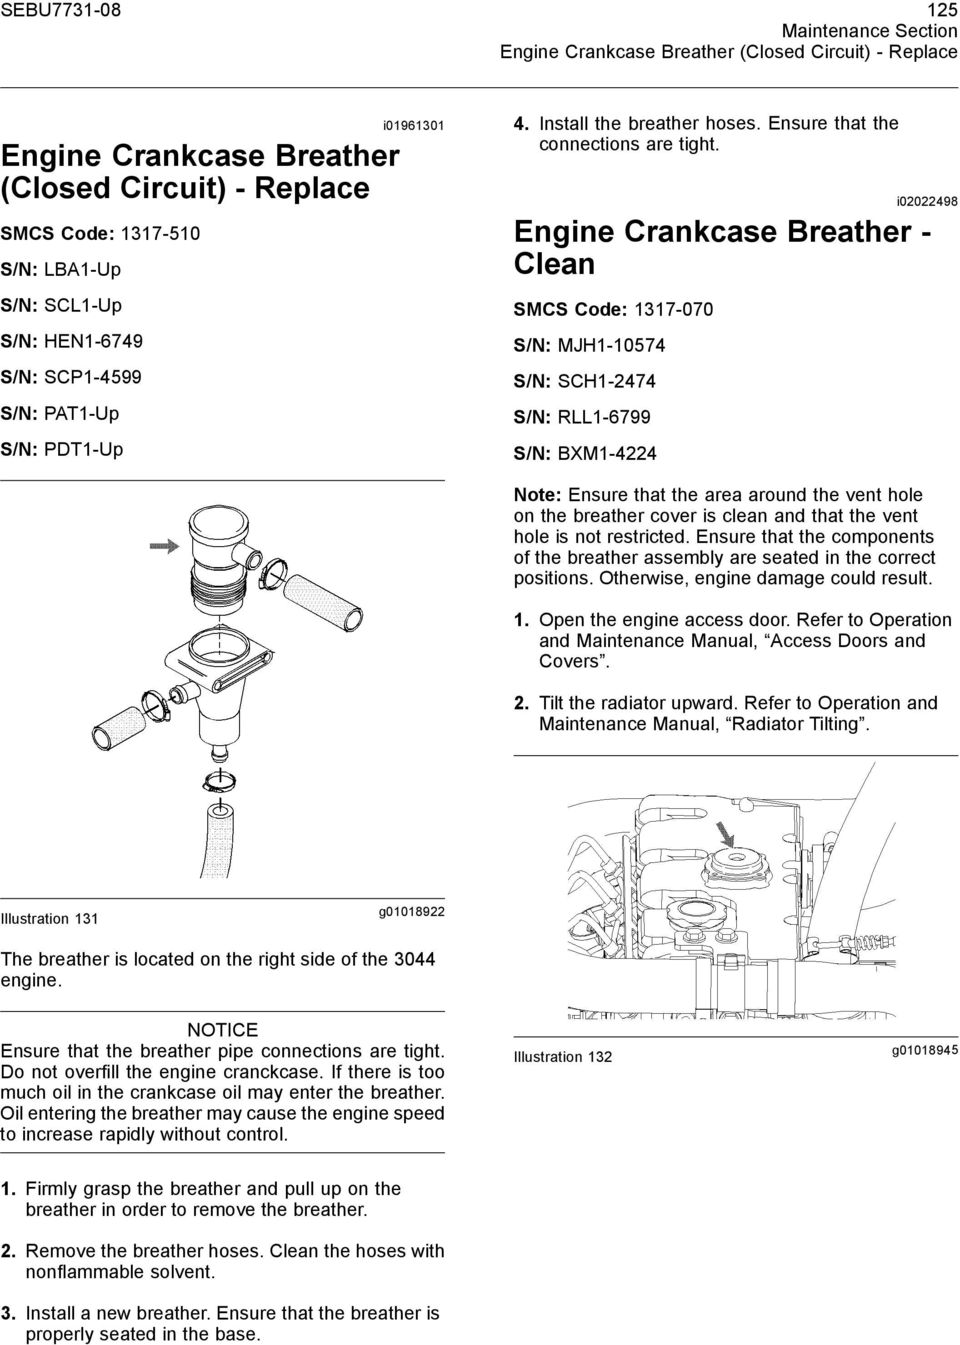 maintenance intervals pdf i02022498 engine crankcase breather clean smcs code 1317 070 s n